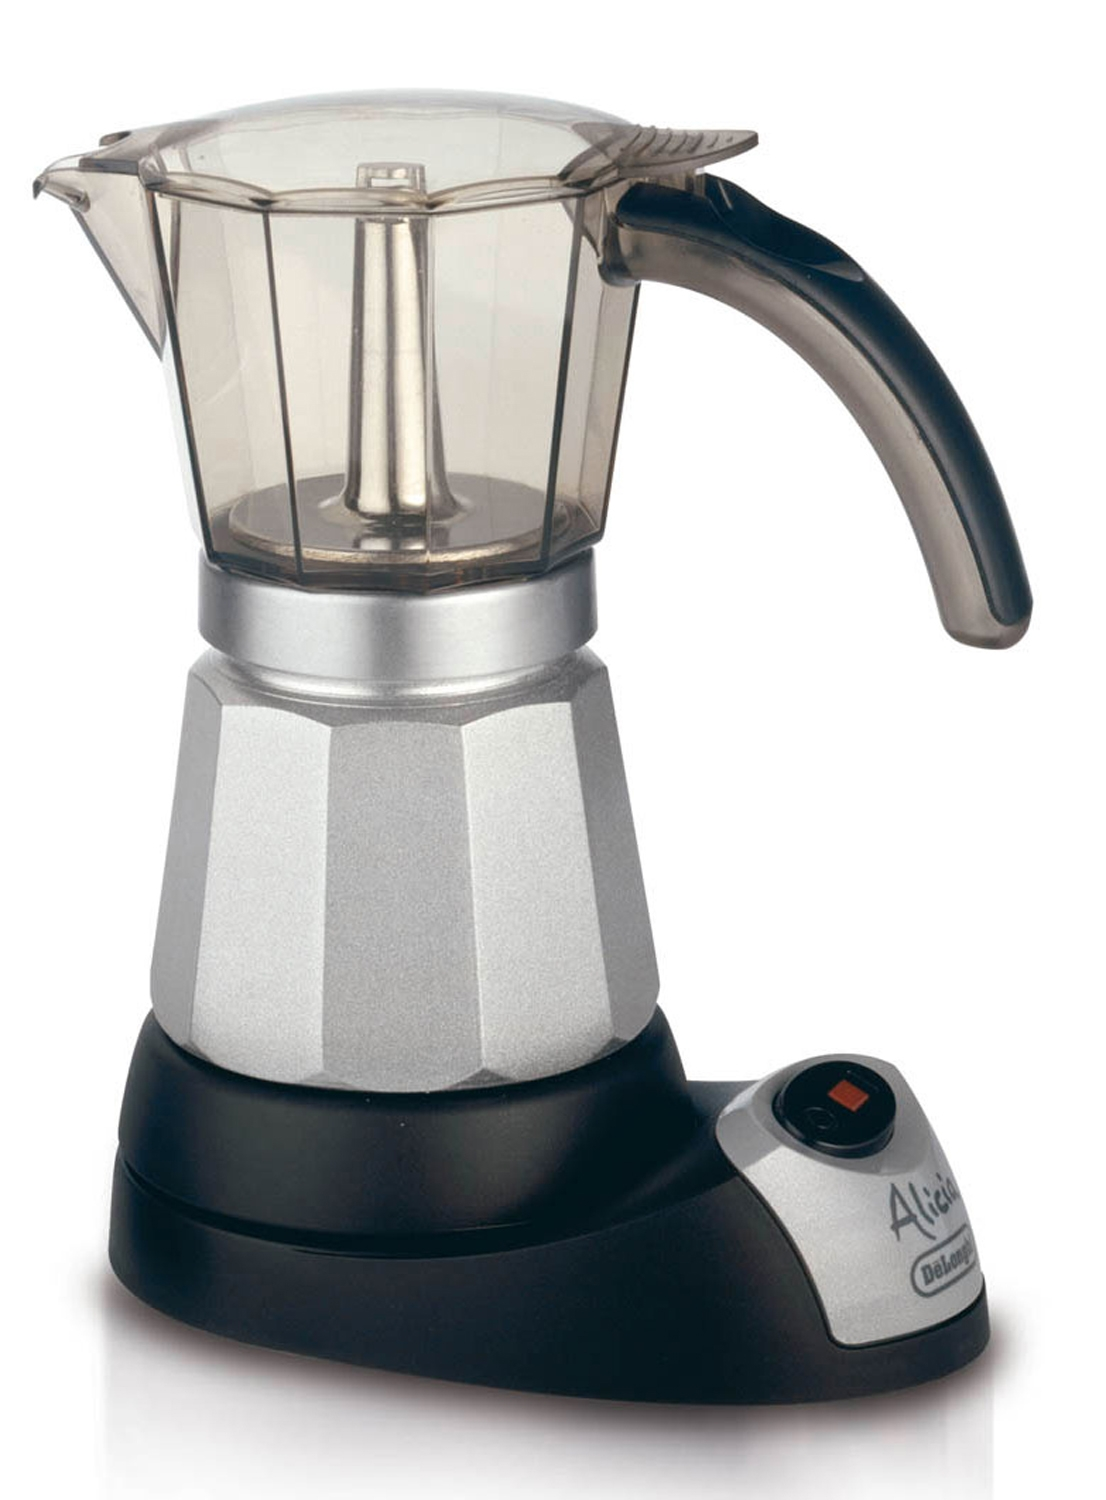 Coffee Maker Big W : DeLonghi Alicia Electric Moka Espresso Maker - EMK6